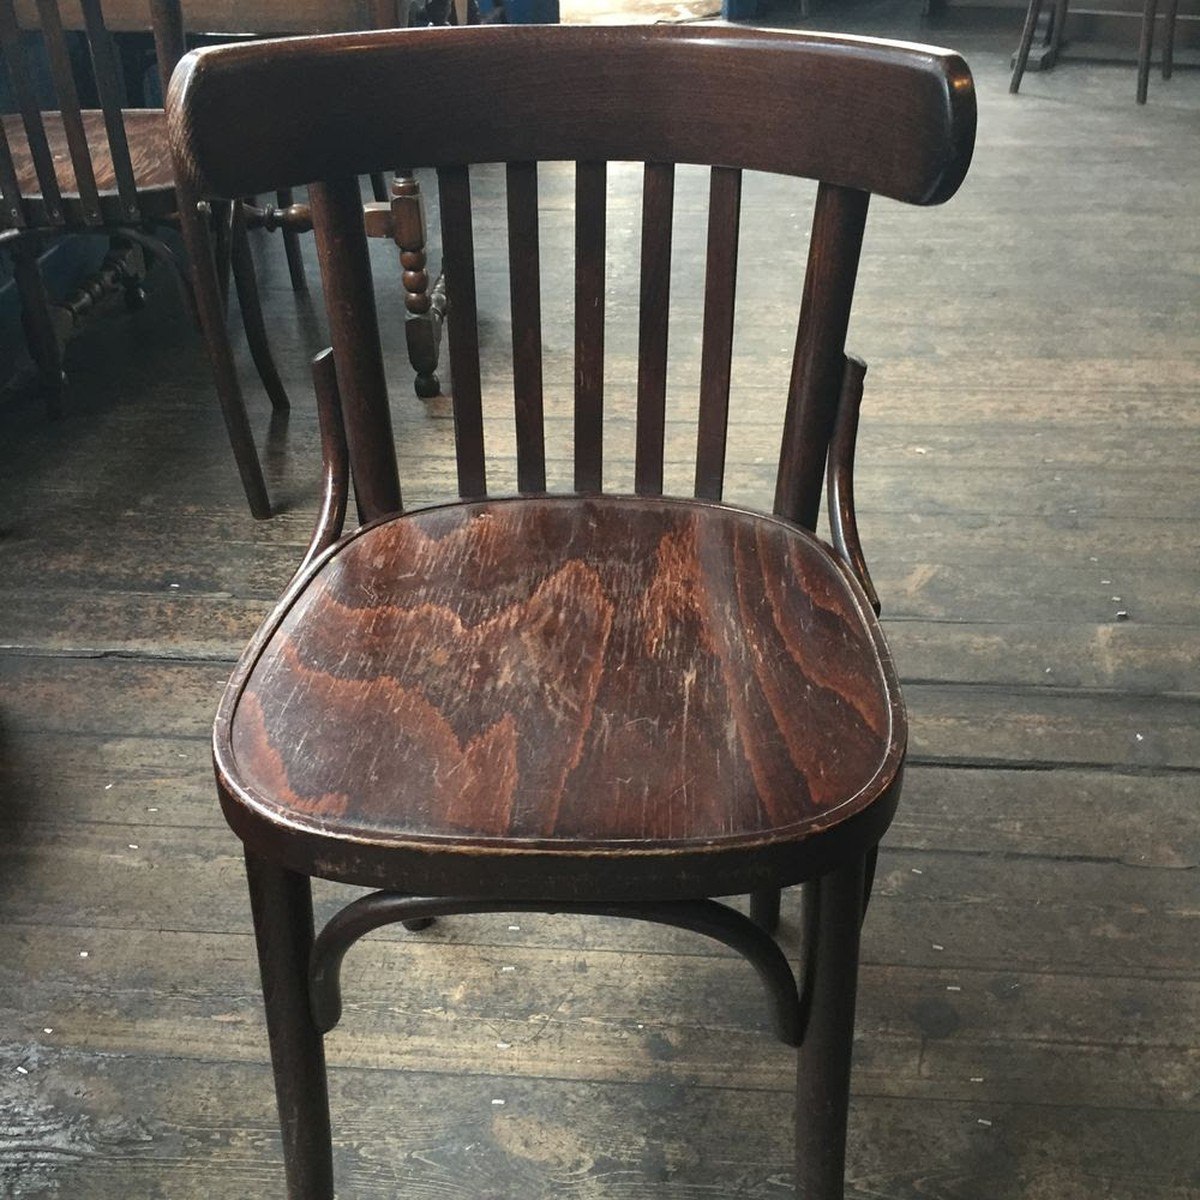 secondhand pub equipment chairs various wooden pub chairs suffolk. Black Bedroom Furniture Sets. Home Design Ideas